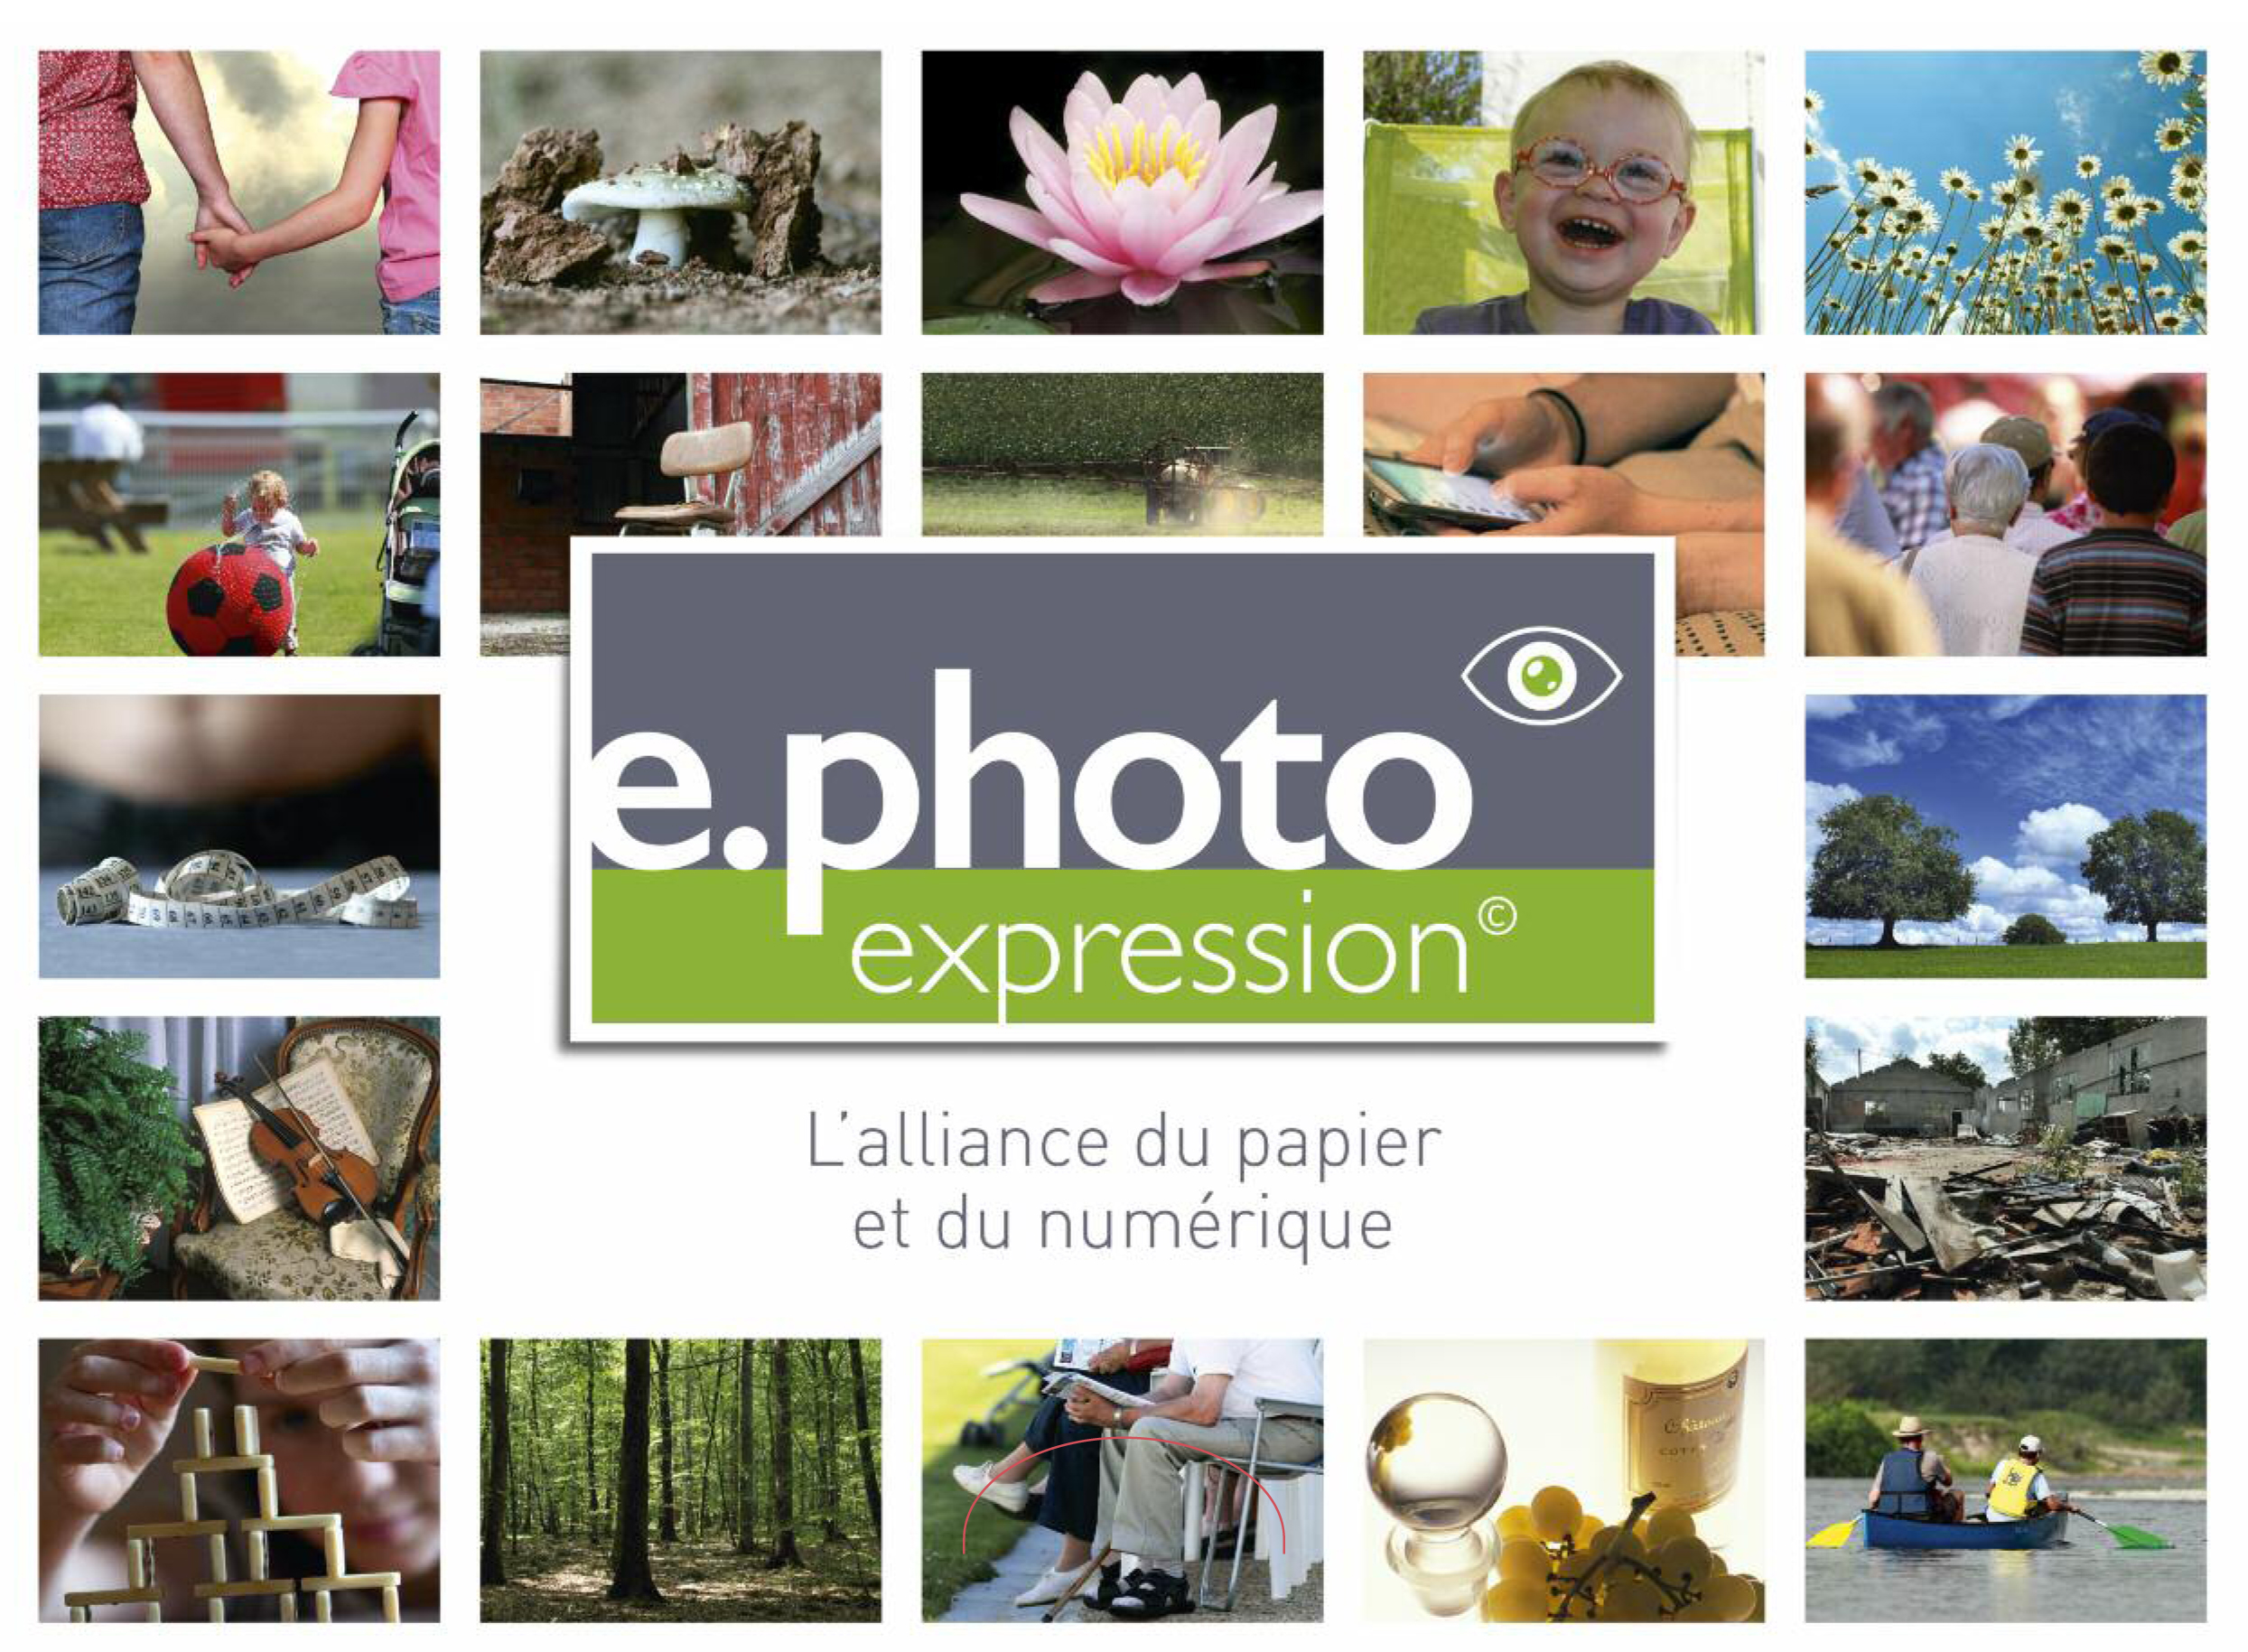 ephotoexpression visuel 2